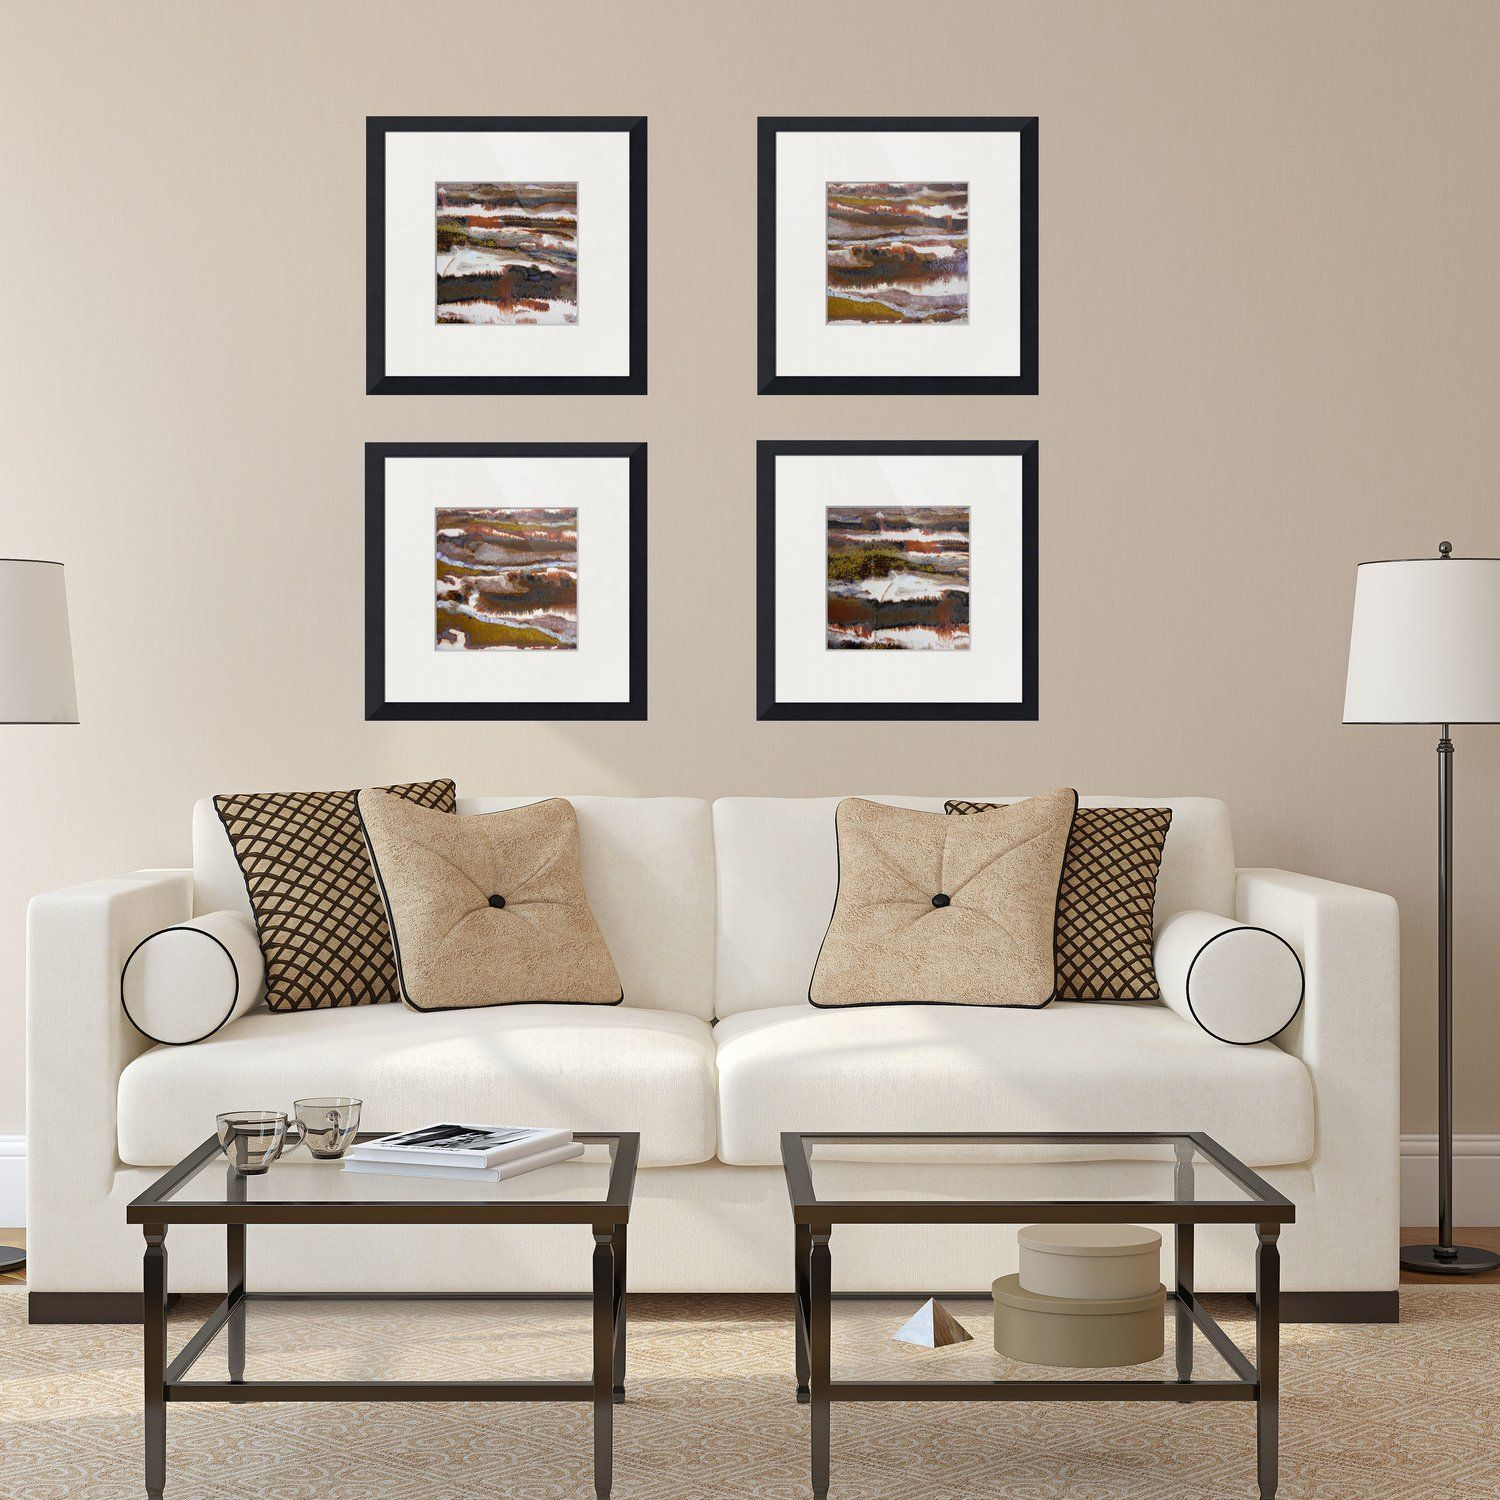 Brown Tan White Metallic And Beige Abstract Framed Prints Set Of Neutral Abstract Wall Art Abstract Artwork Rustic Modern Framed Artwork Modern Fra Casas